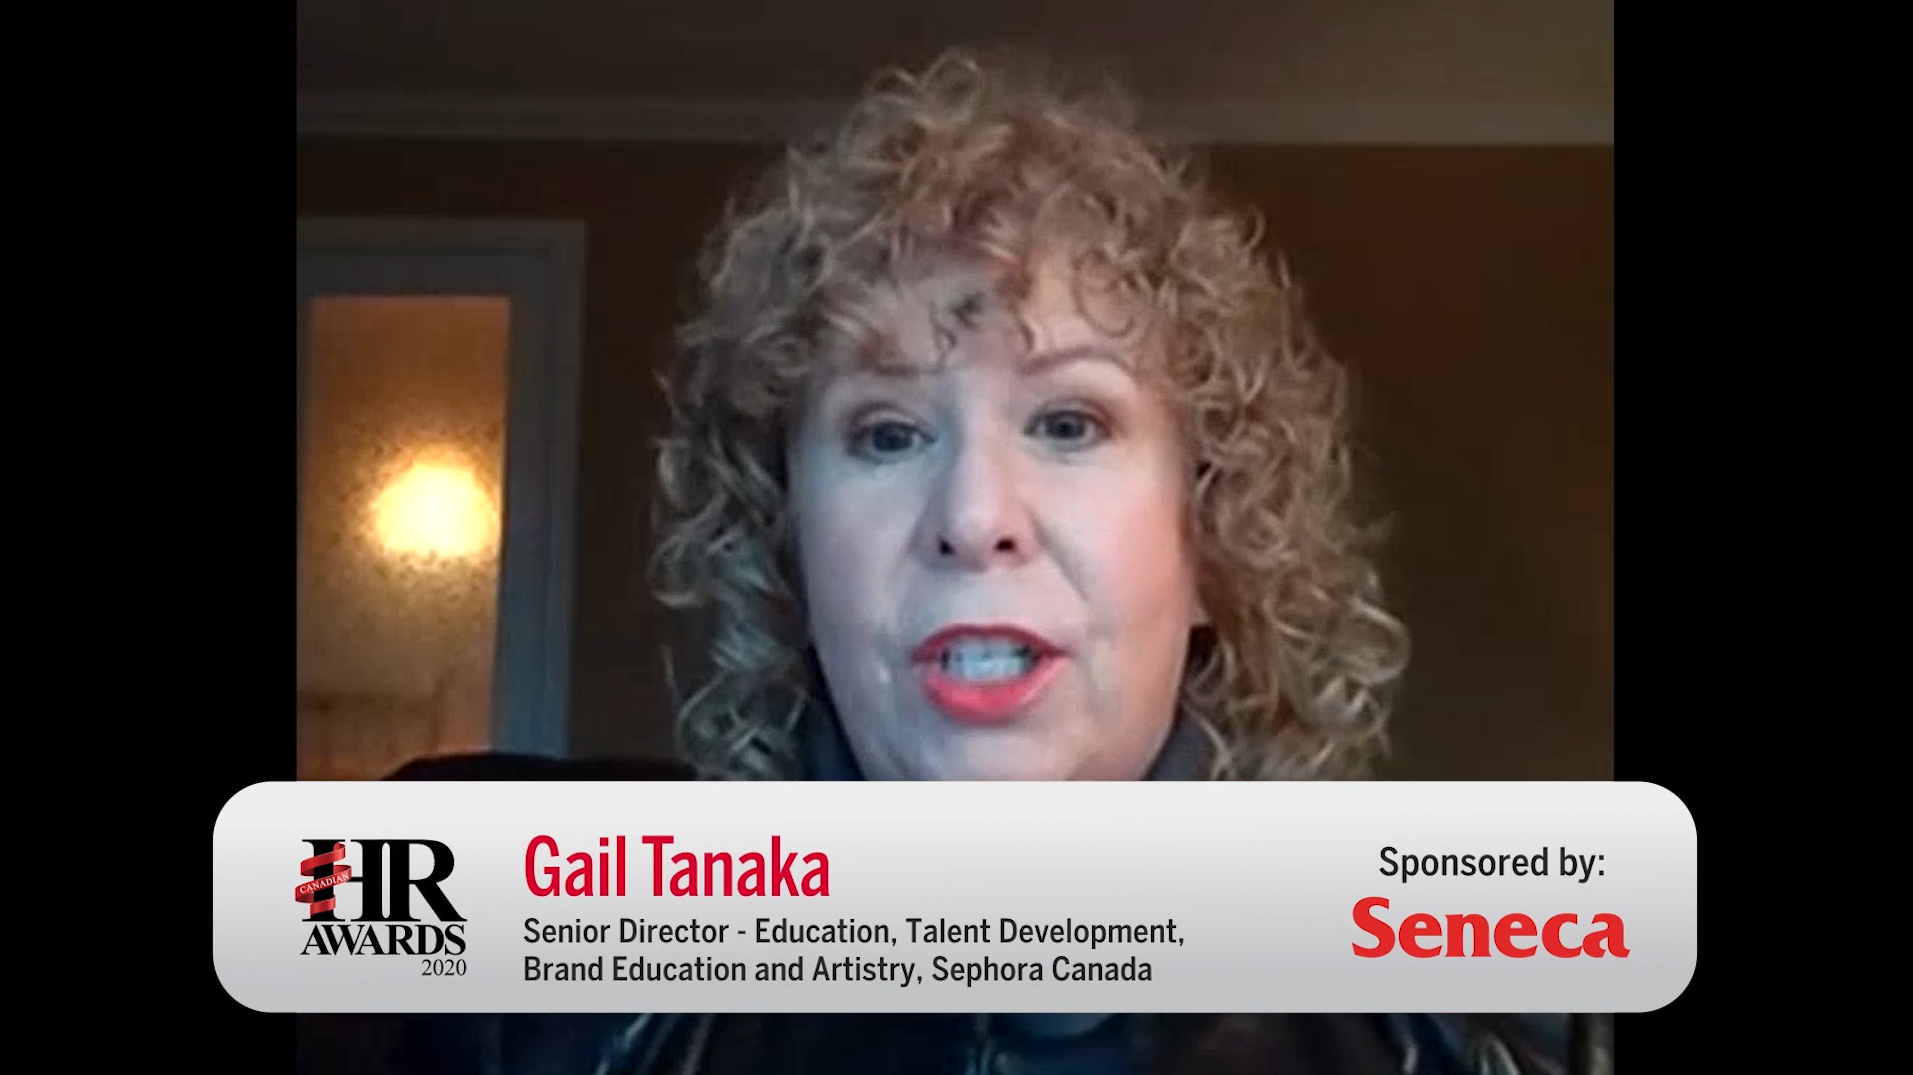 Video interview: Gail Tanaka, Senior Director, Education, Talent Development and Artistry at Sephora